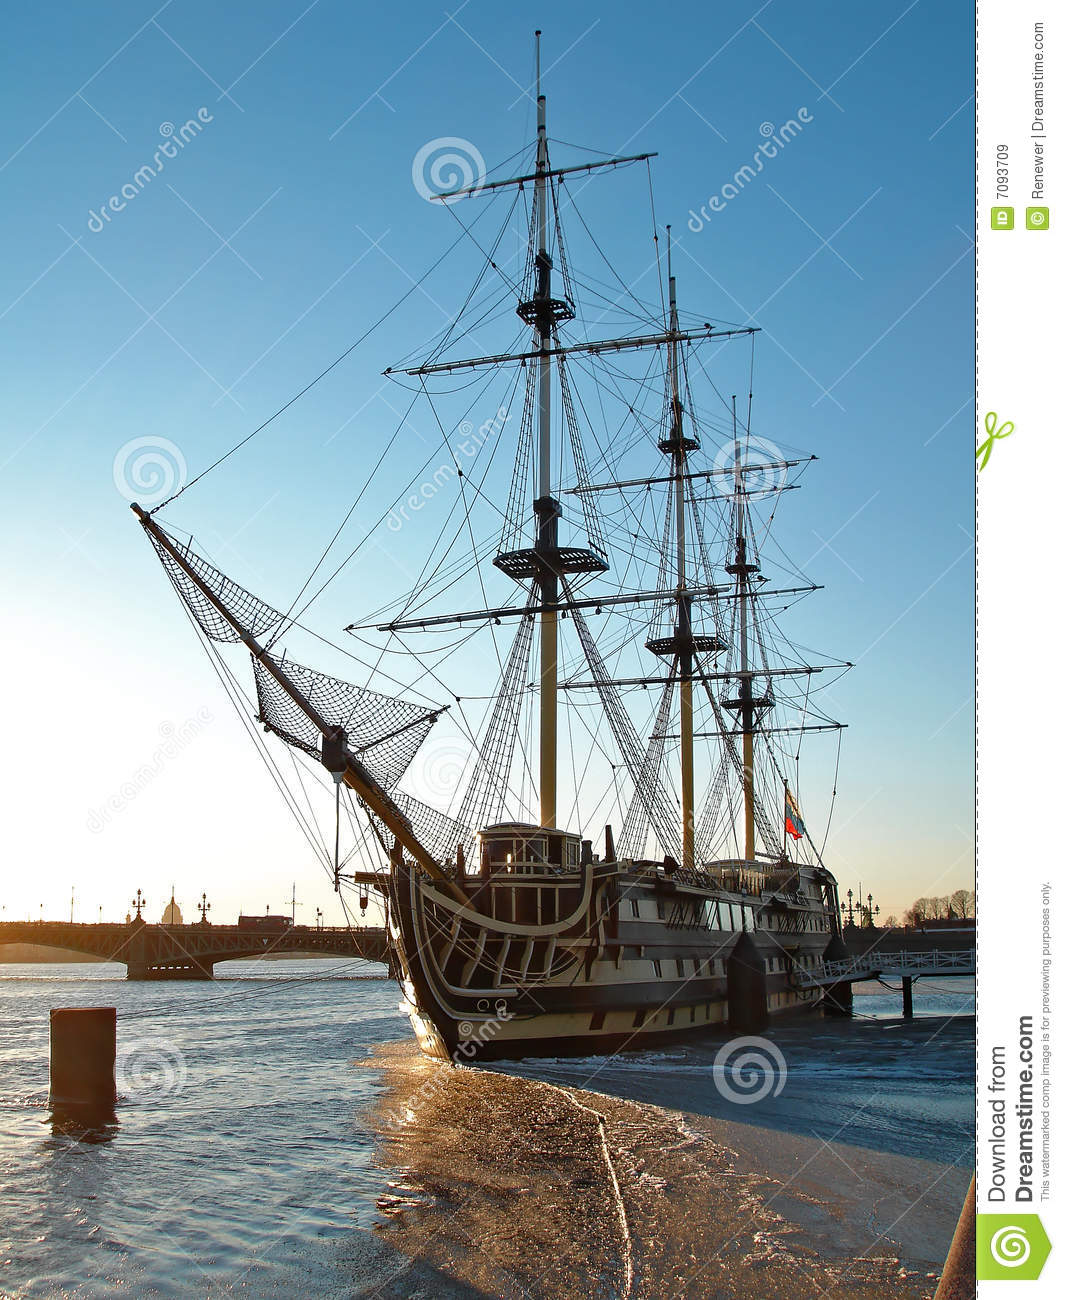 Old Wooden Ship, Saint-Petersburg Royalty Free Stock Images - Image ...